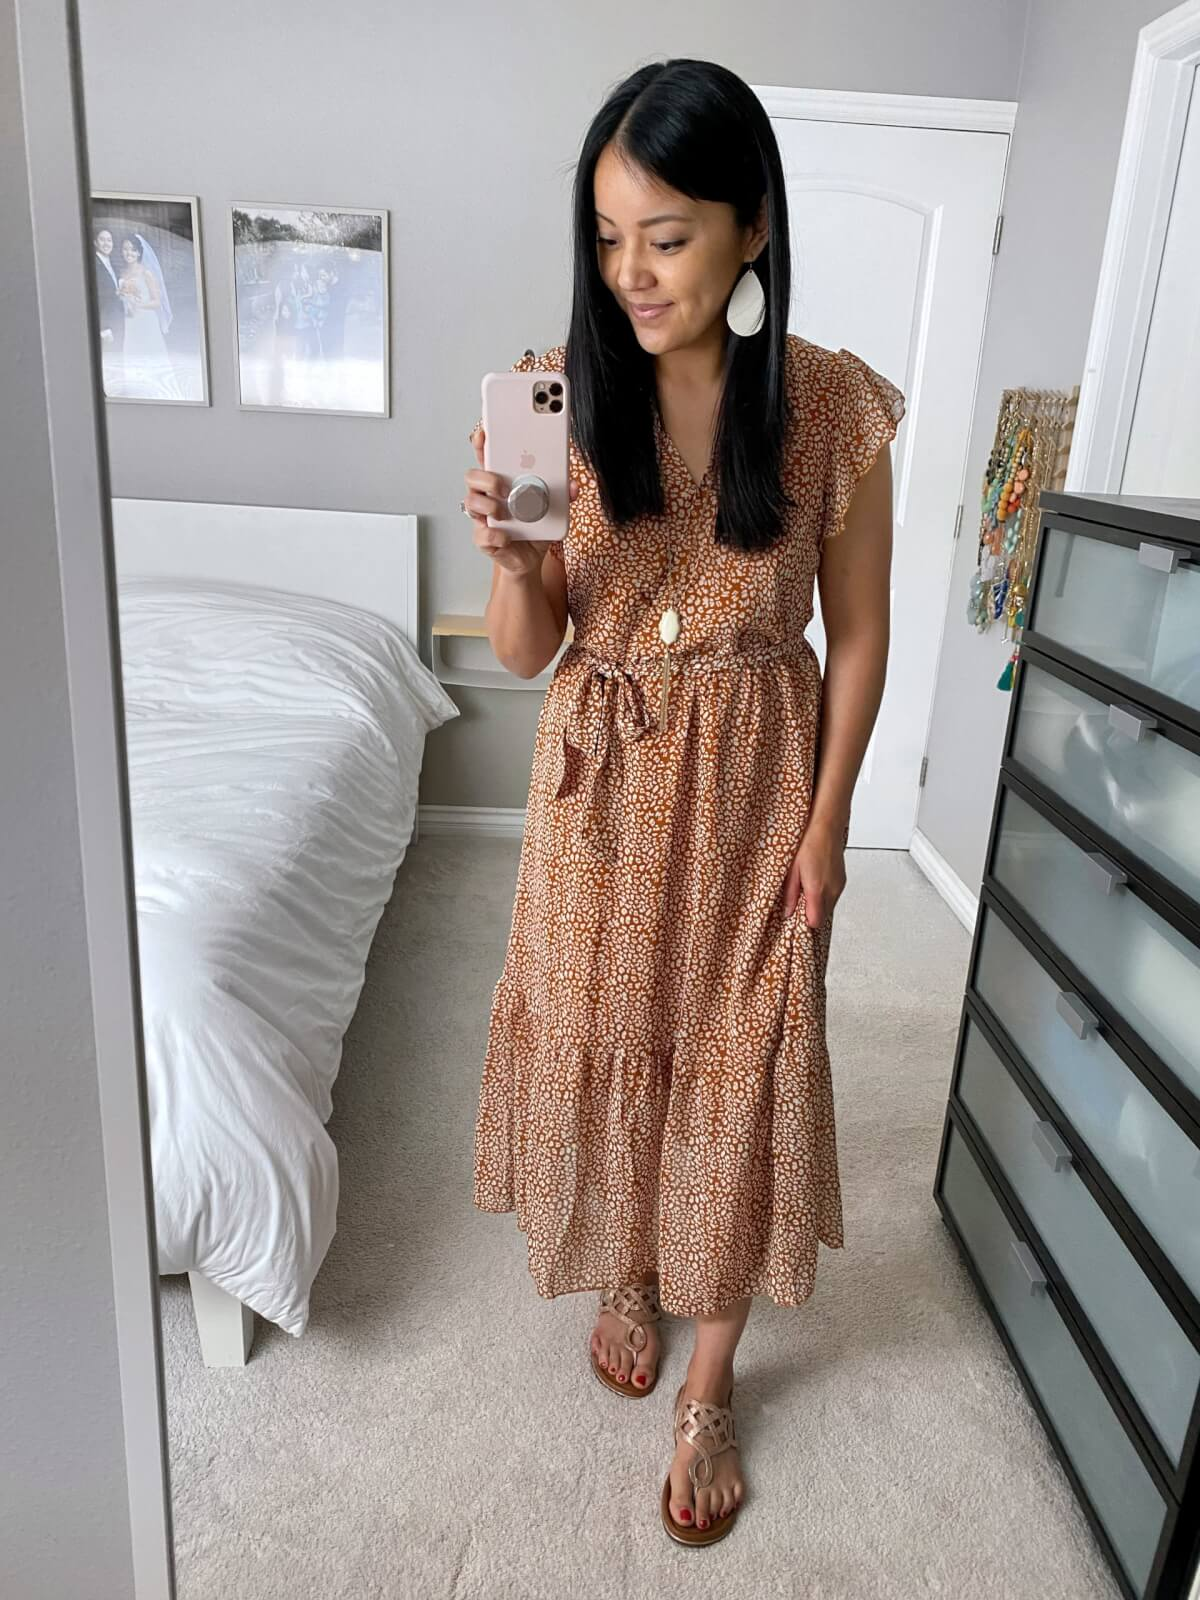 Dressy Outfit: Amazon rust bohemian tiered midi dress + metallic gold sandals + white earrings + pendant necklace